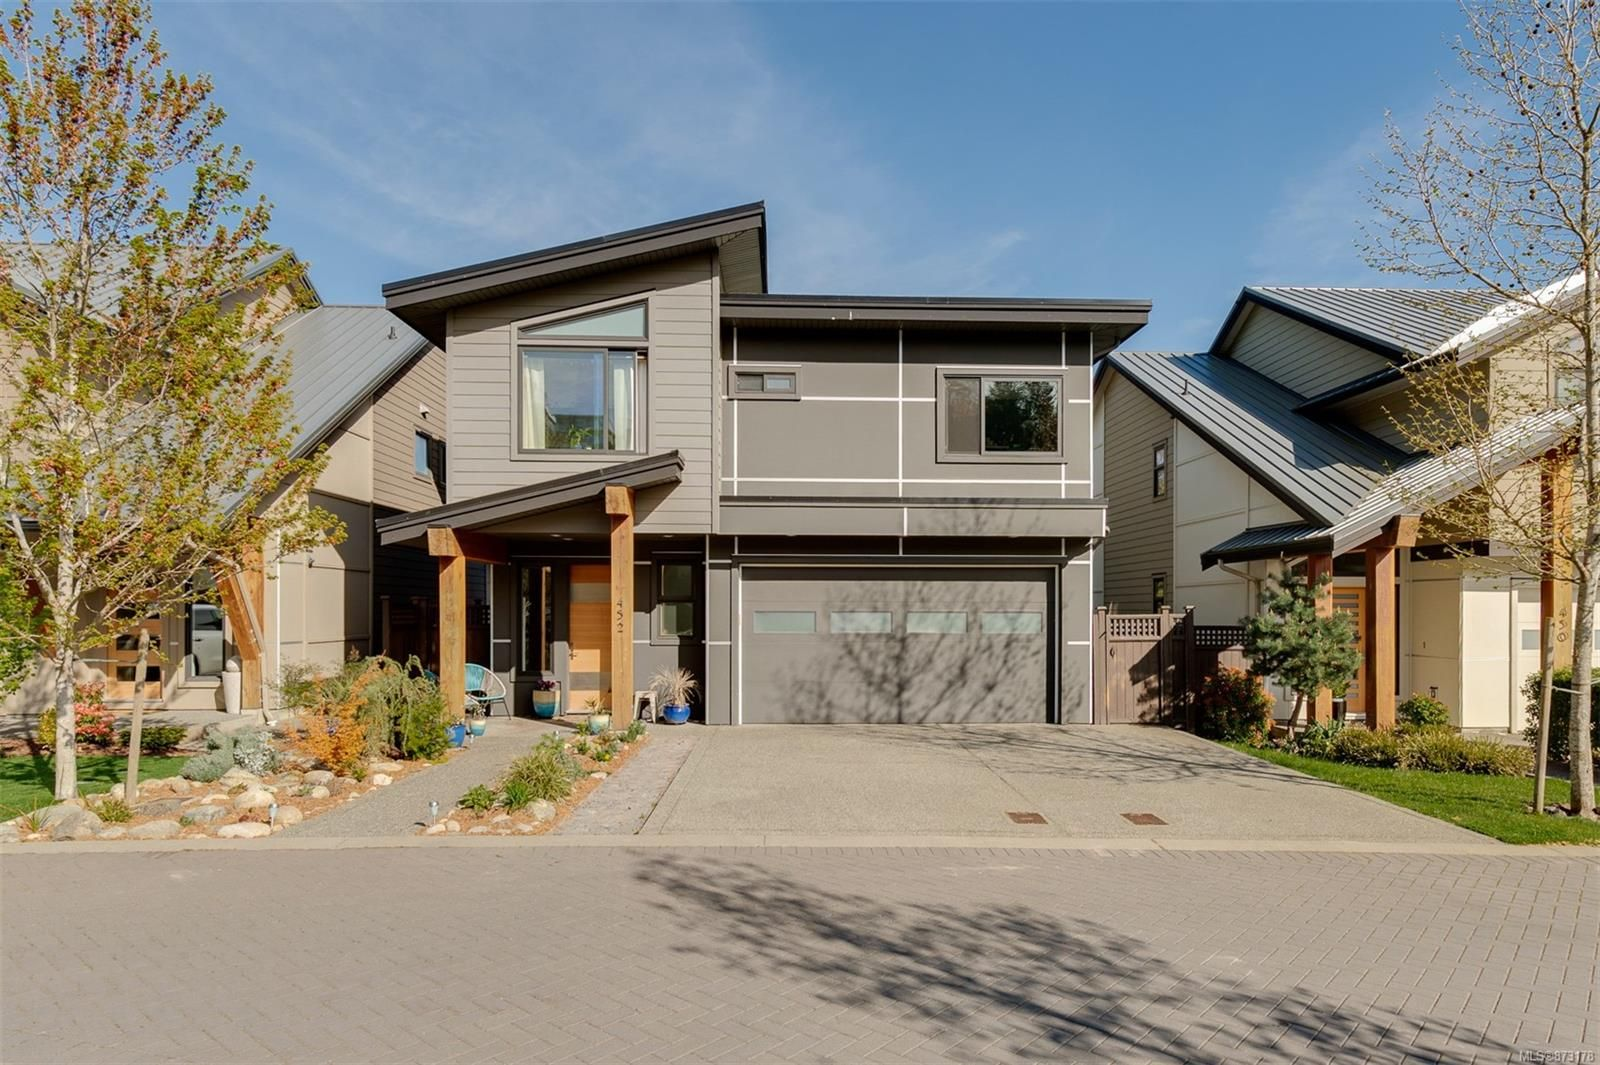 Main Photo: 452 Regency Pl in : Co Royal Bay House for sale (Colwood)  : MLS®# 873178